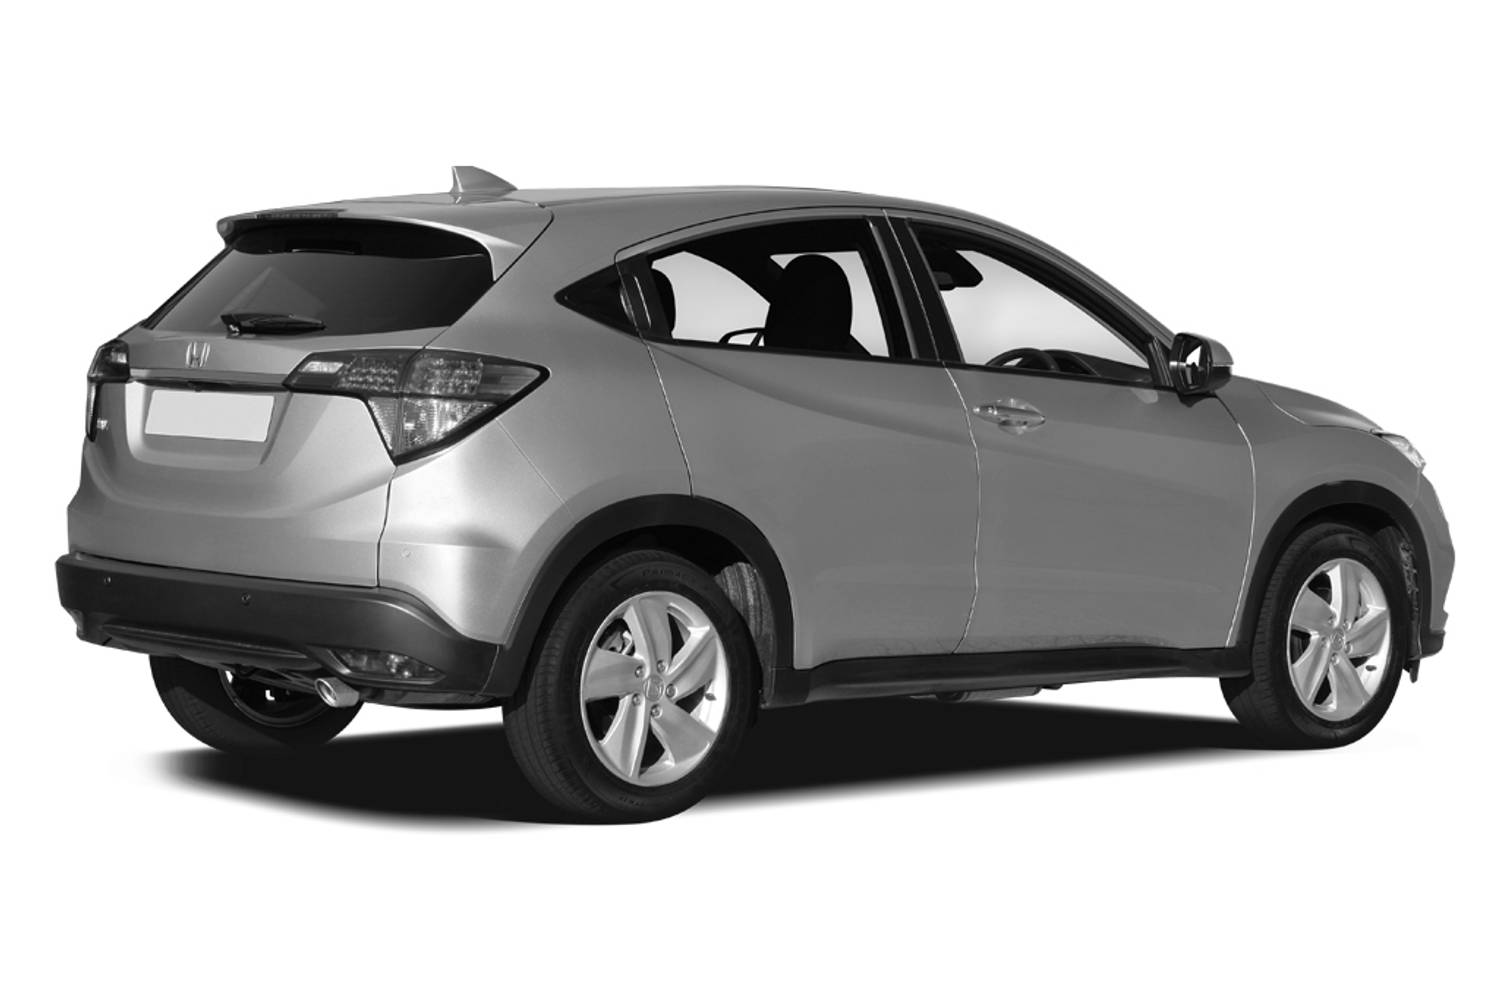 Honda HR-V Hatchback 5dr Rear Three Quarter